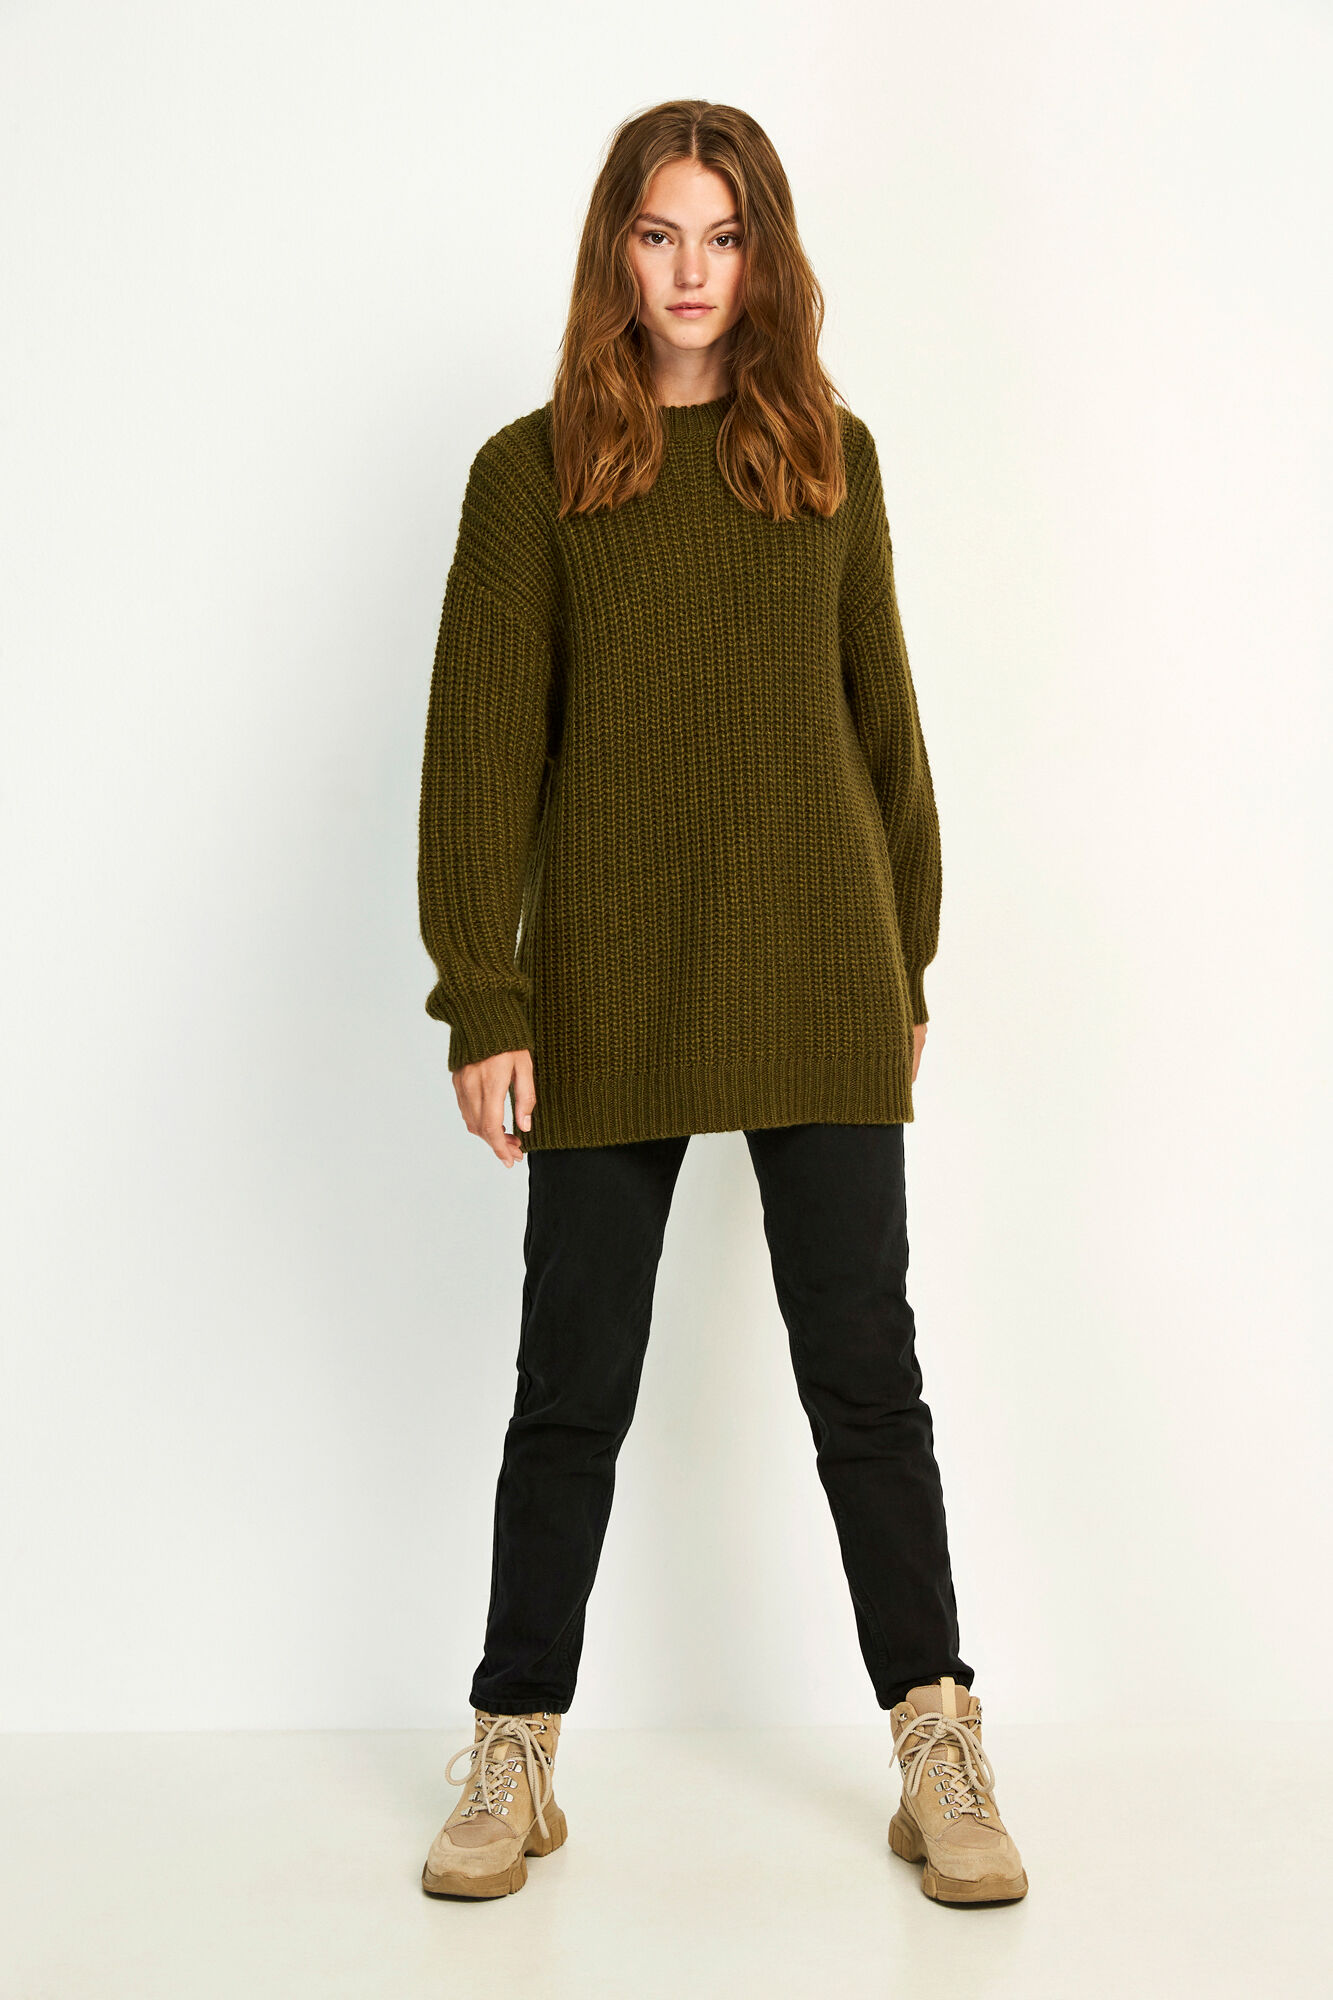 ENLINDEN LS KNIT 5213, OLIVE NIGHT MEL